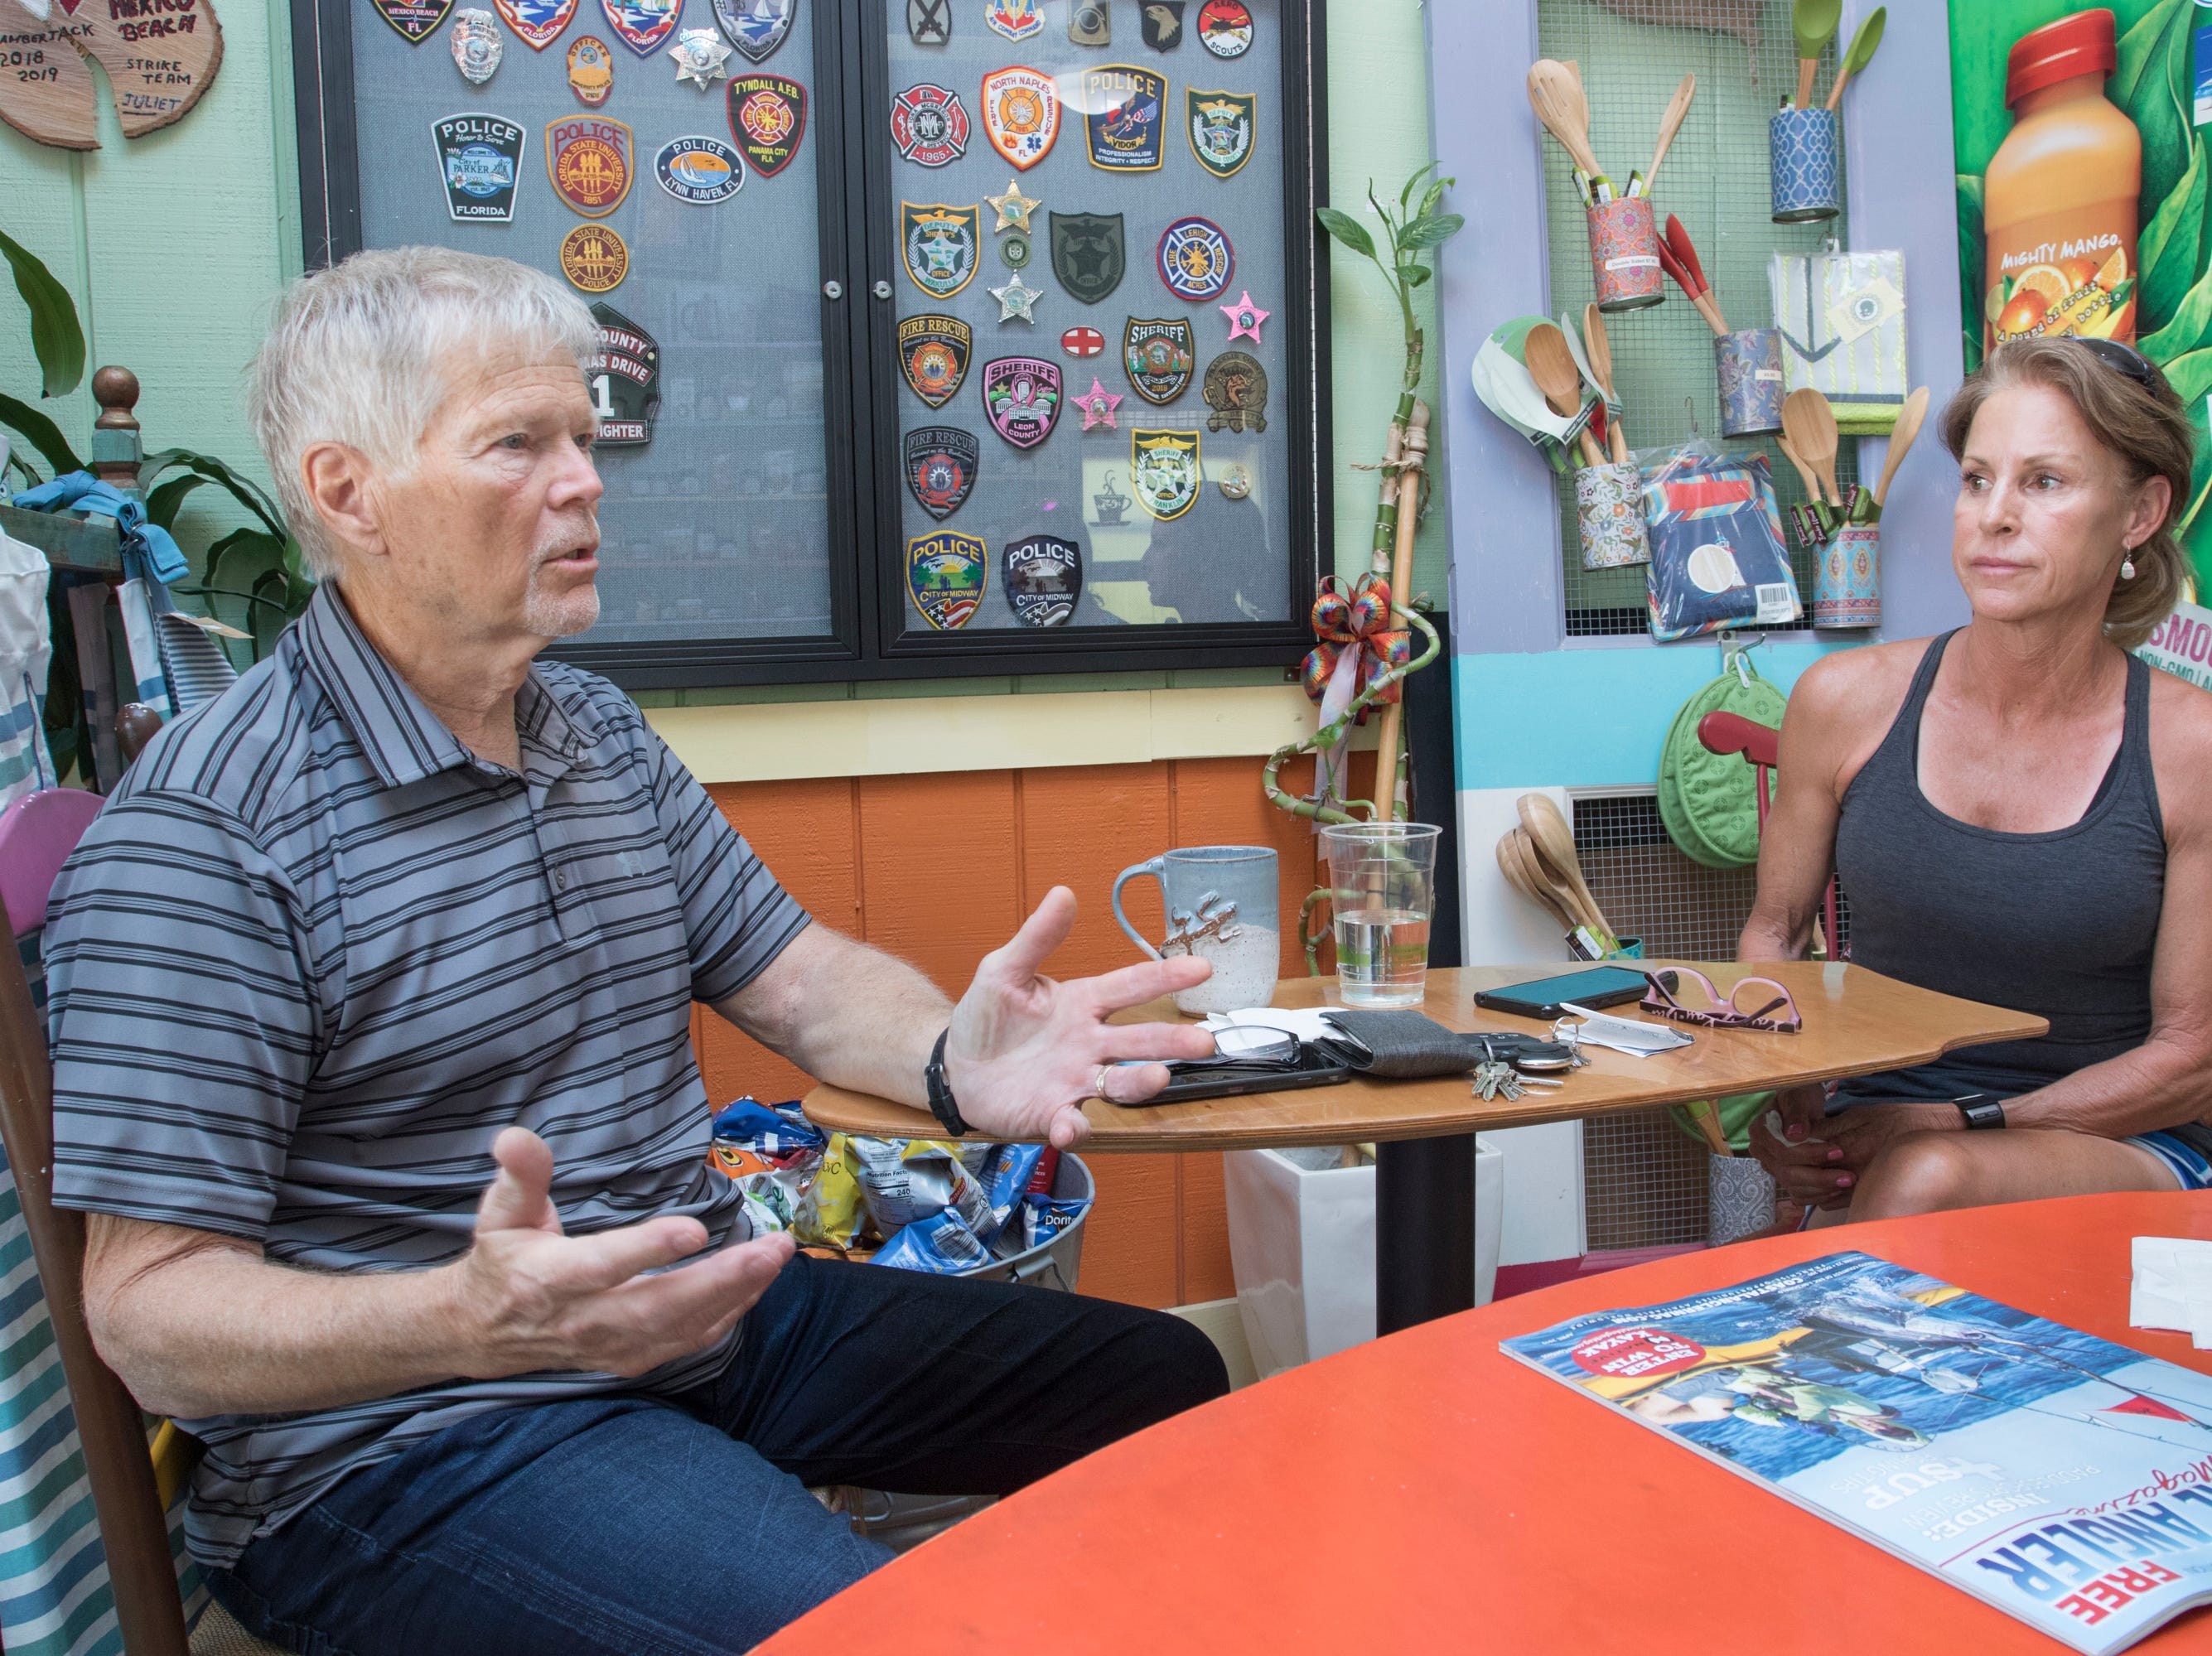 Local residents Charlie and Dana Black talk about surviving Hurricane Michael in the Mexico Beach area of Florida on Wednesday, May 8, 2019.  Michael made landfall as a Category 5 hurricane between Mexico Beach and Tyndall Air Force Base on October 10, 2018.